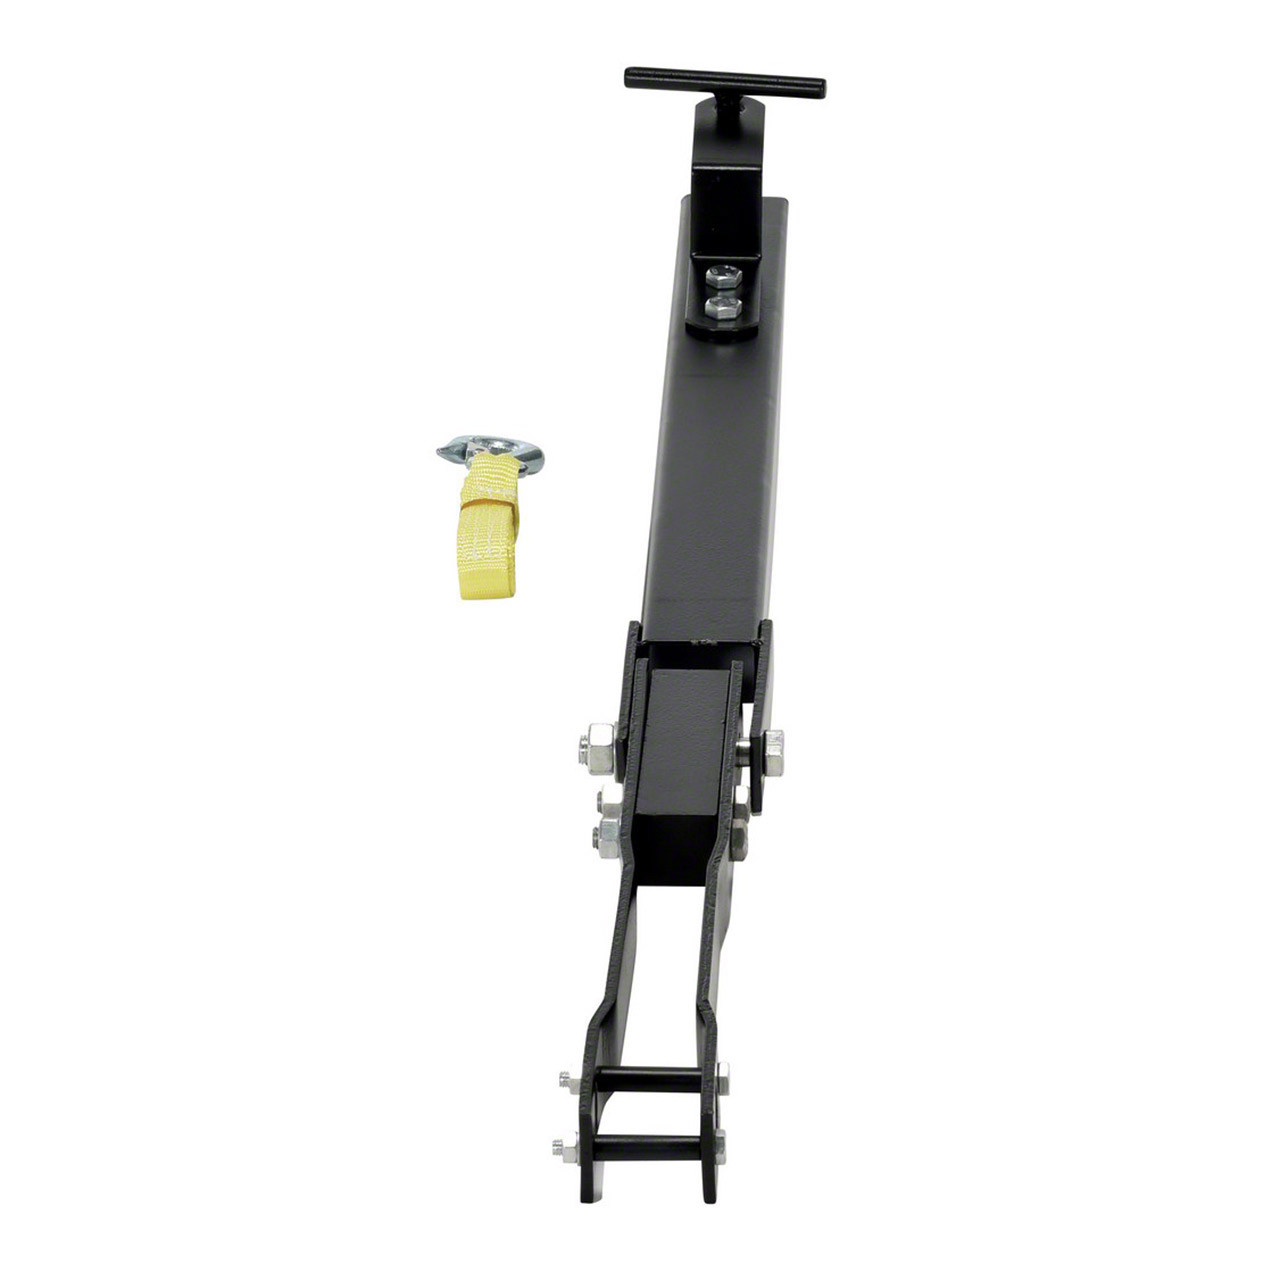 The manual all terrain pallet jack tow package accessory and safety strap